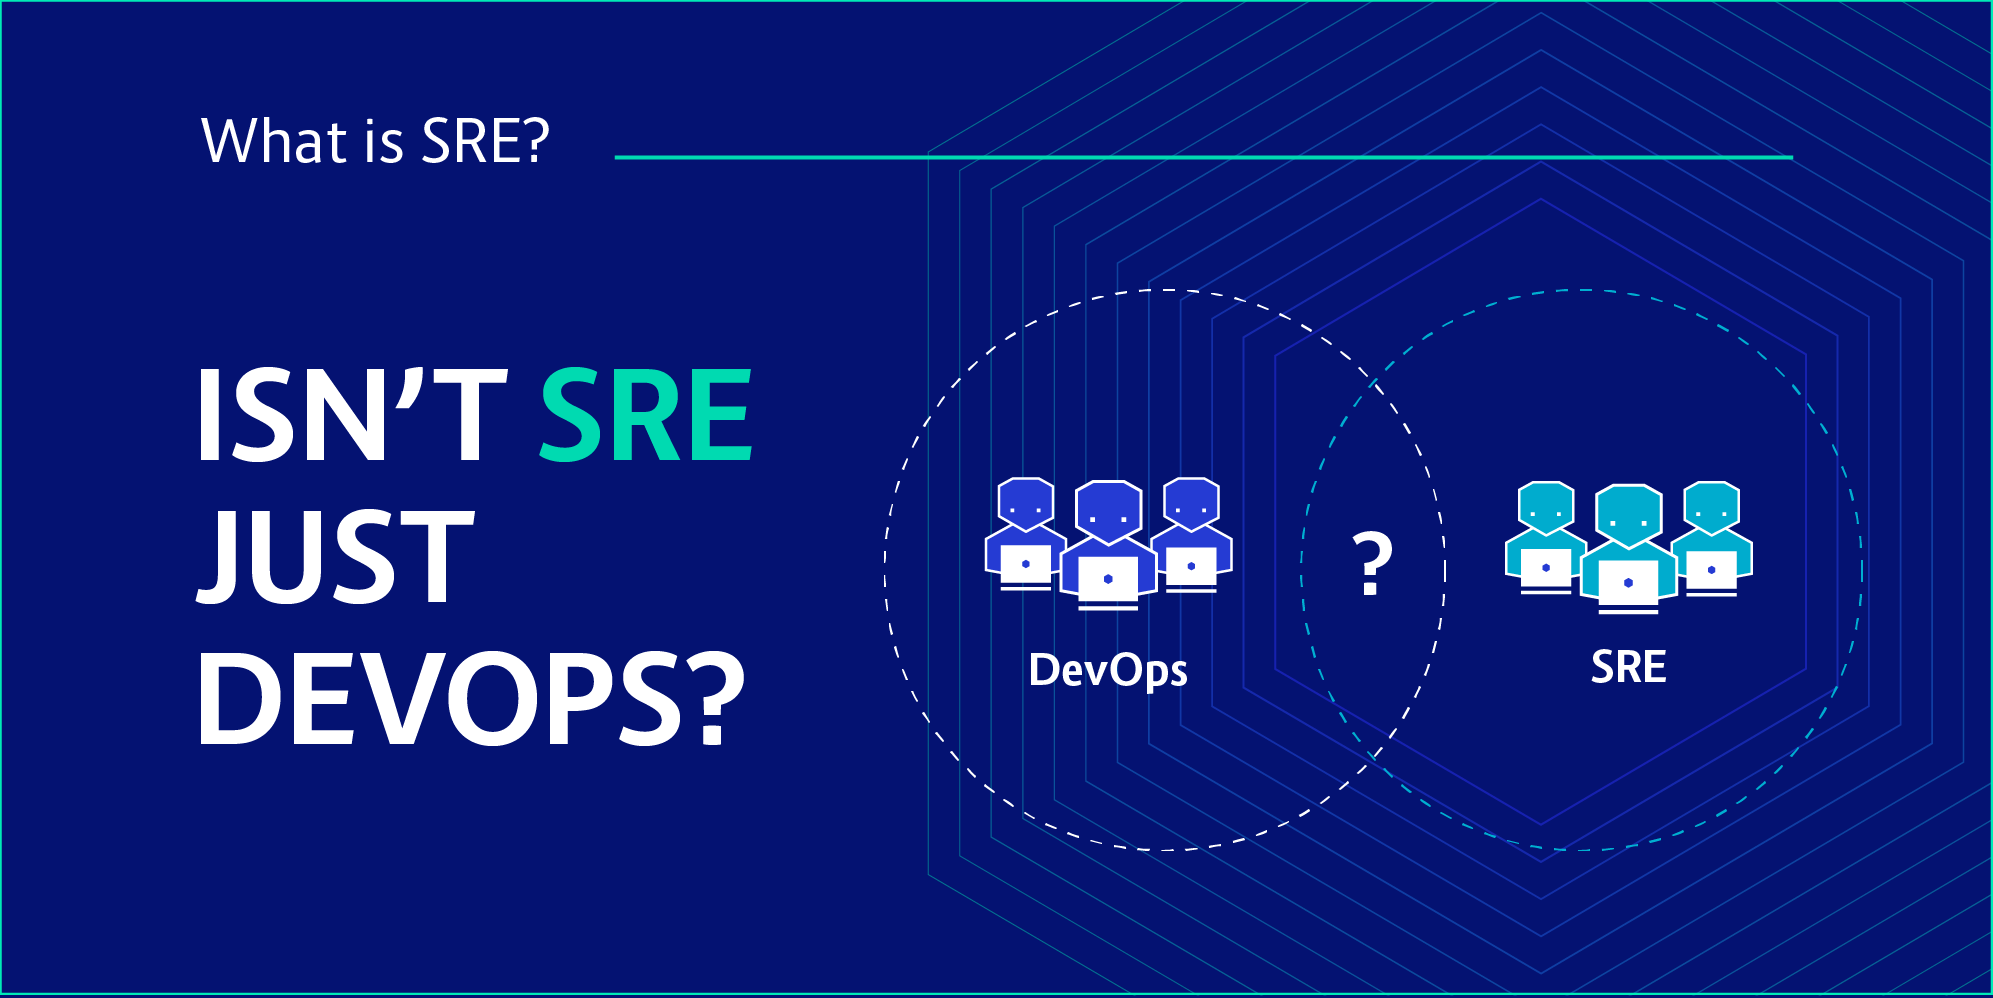 Isn't SRE just DevOps?